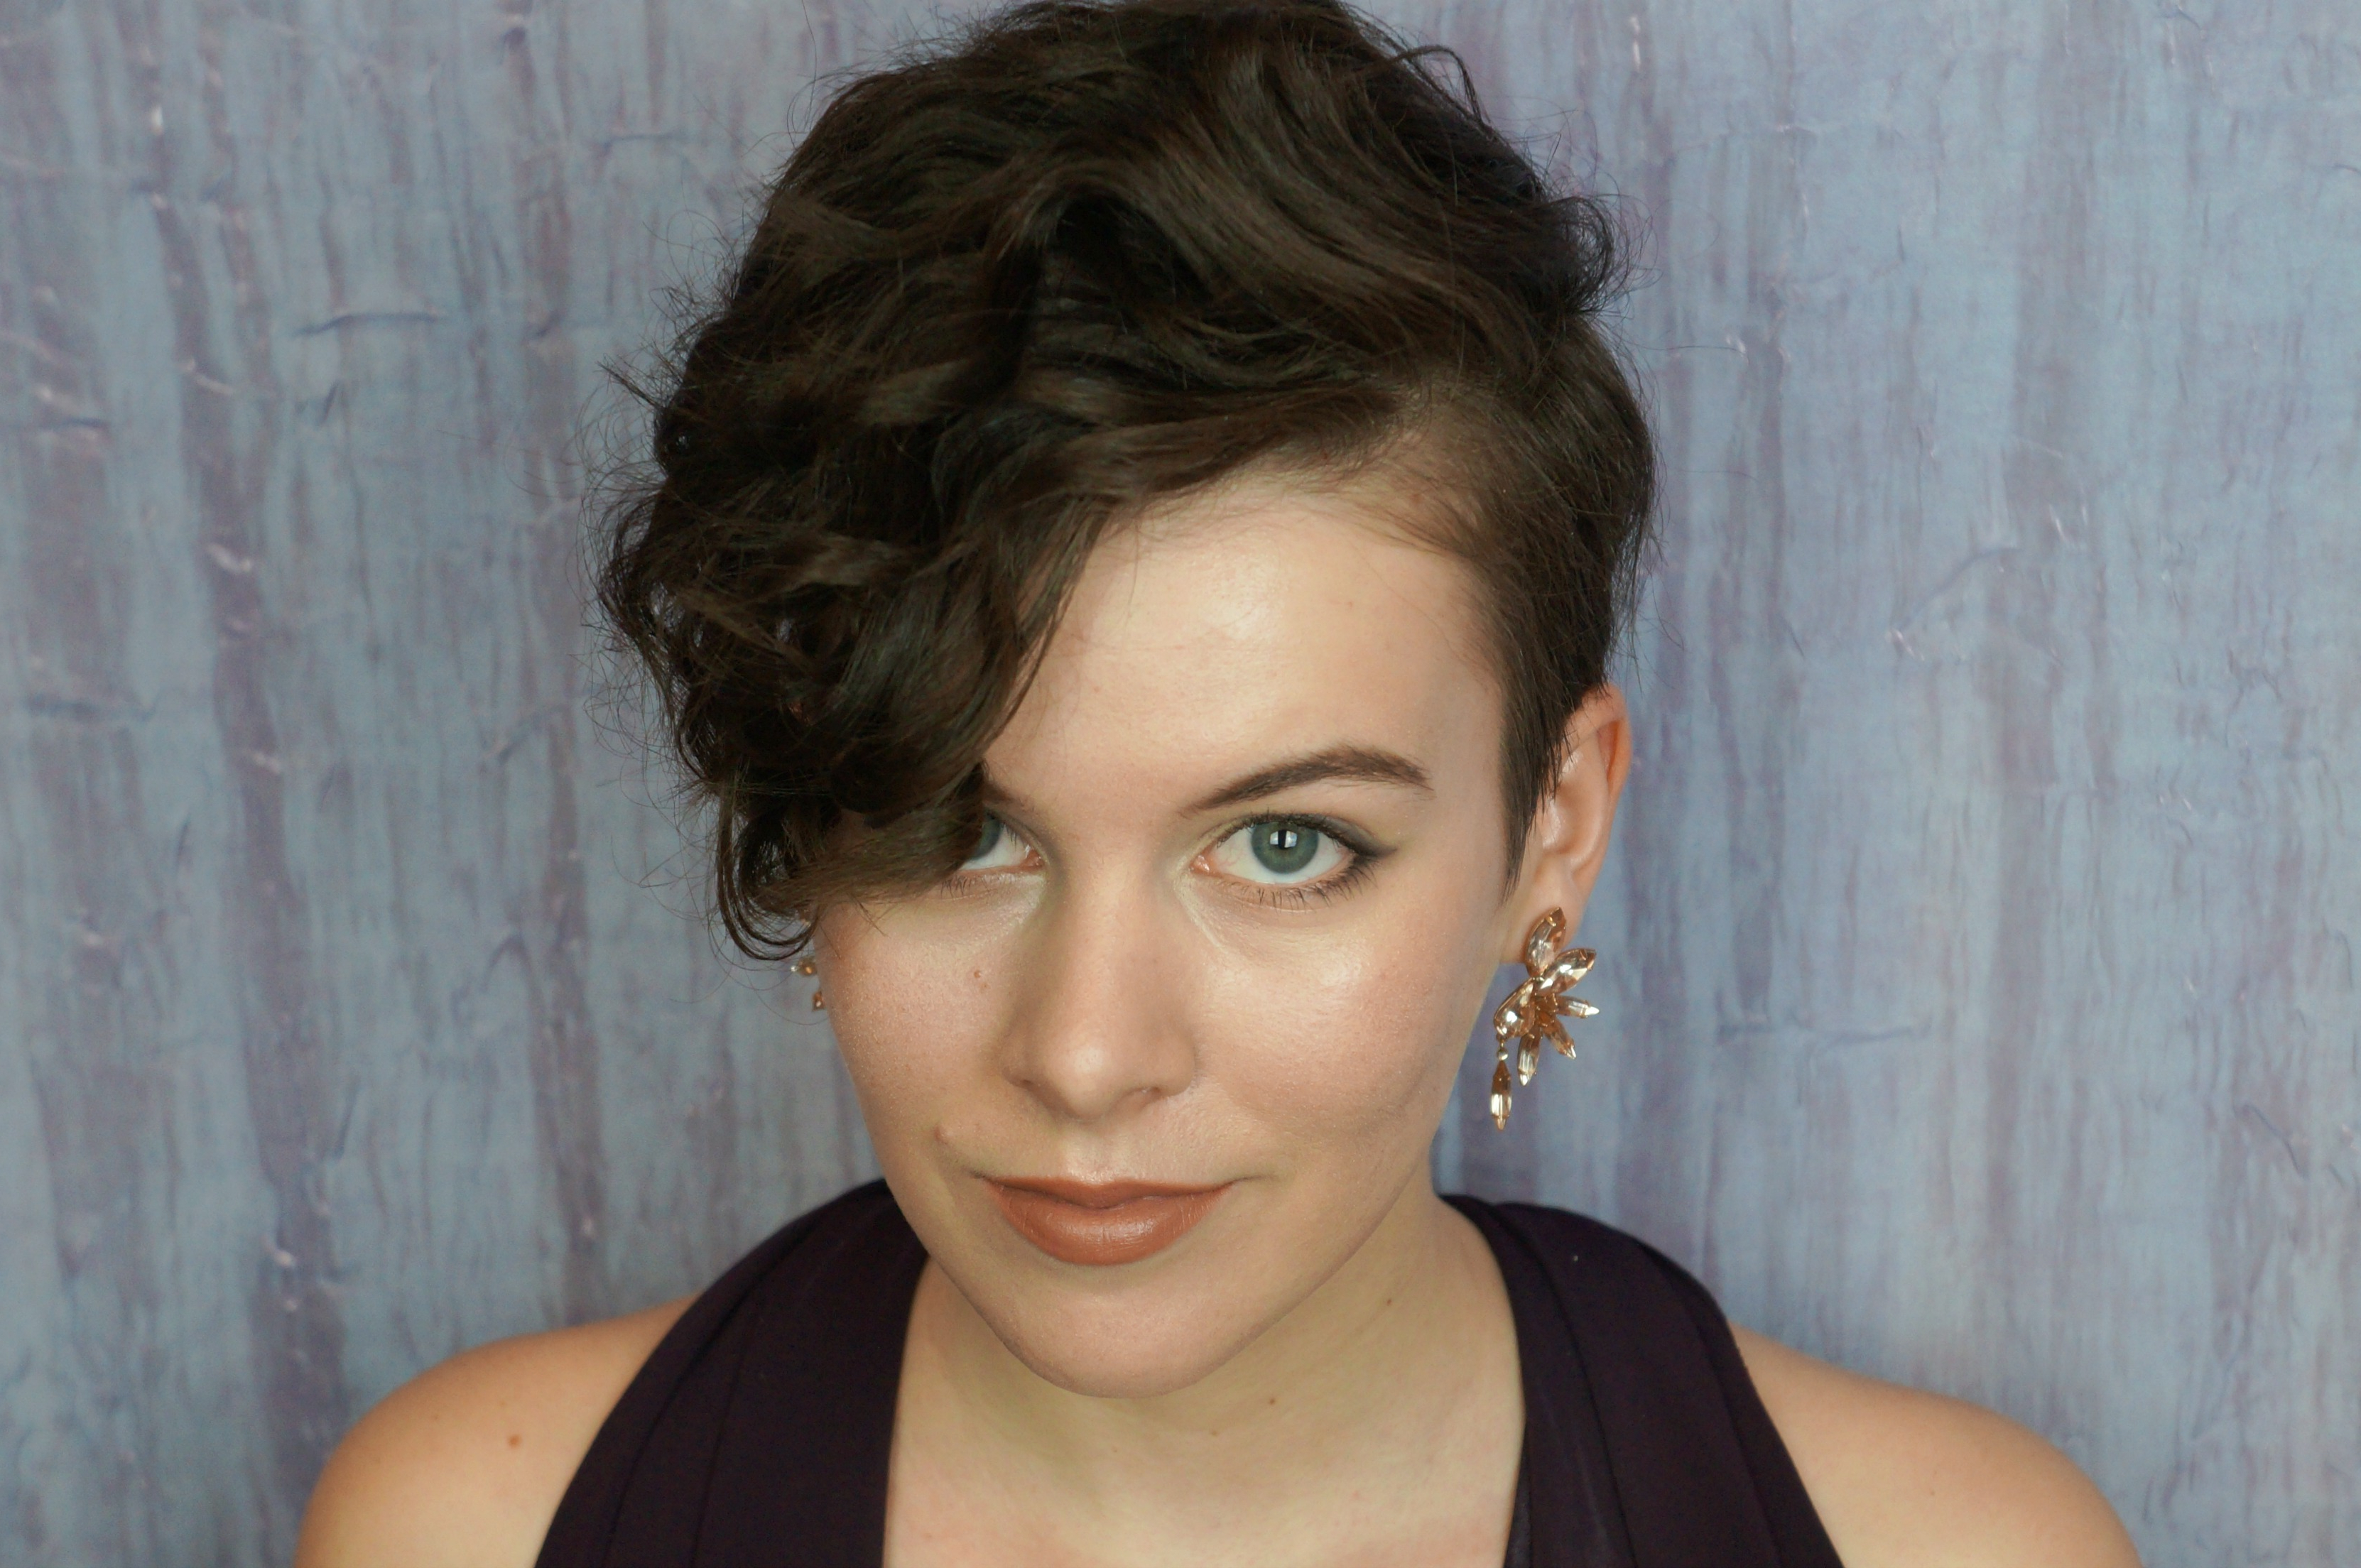 4 Short Hairstyles For Prom That Prove Pixie Cuts Can Be Extremely Glam With Regard To Short Hairstyles For Women With Big Foreheads (View 17 of 25)